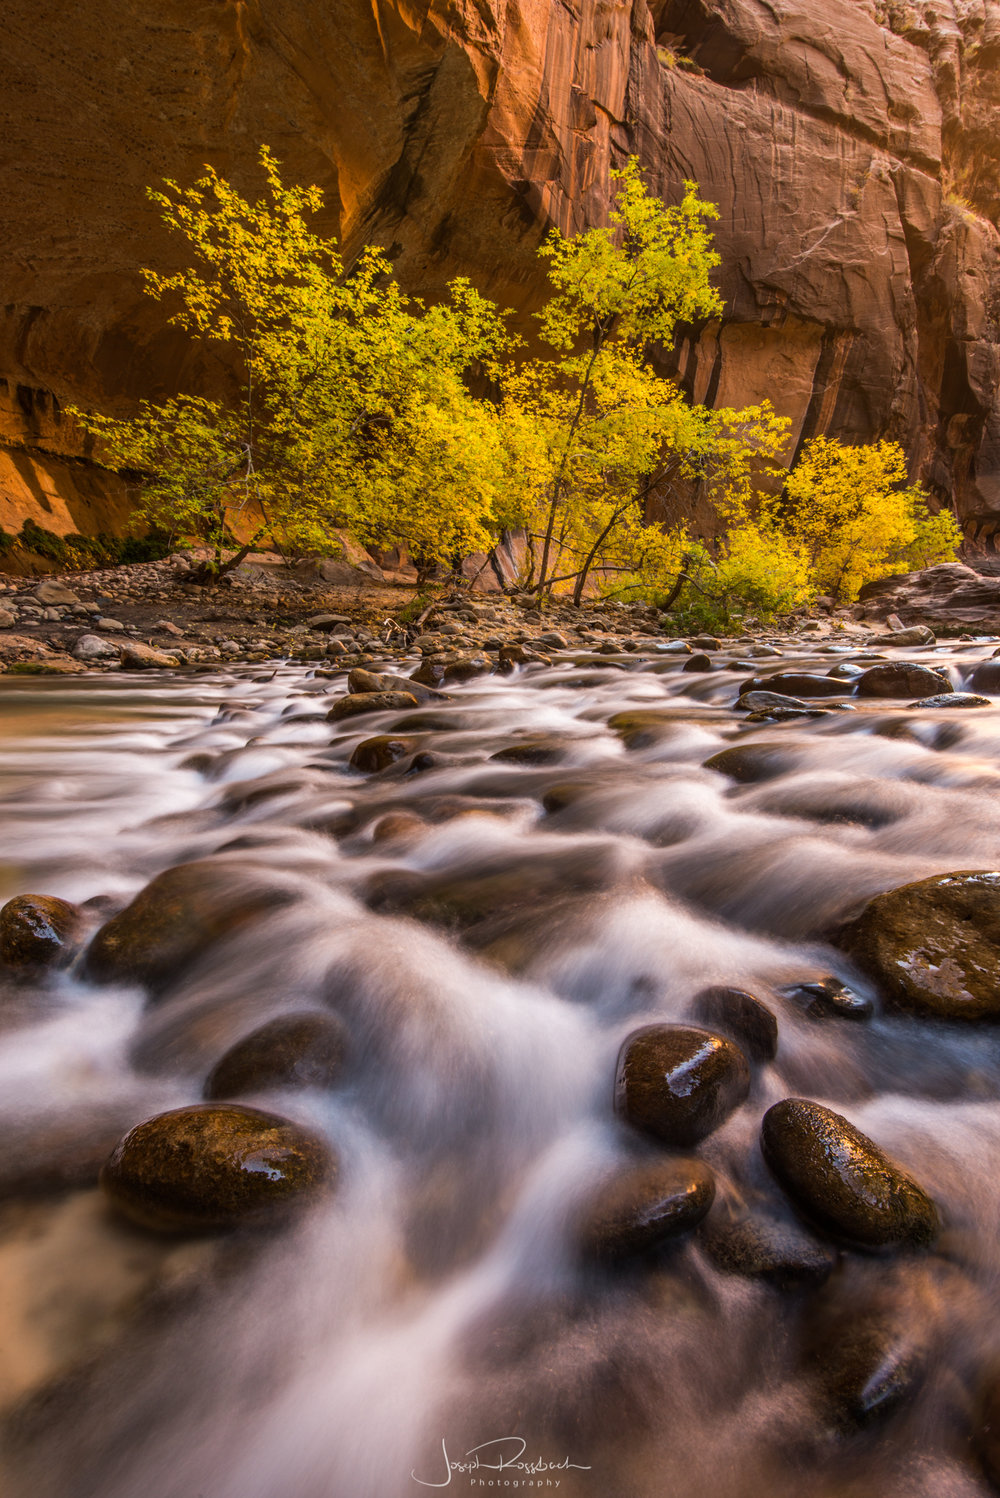 Autumn in Zion - Zion NP, Springdale, UTNovember 4-8, 2019 | $1,595.00 $500 Due At Registration